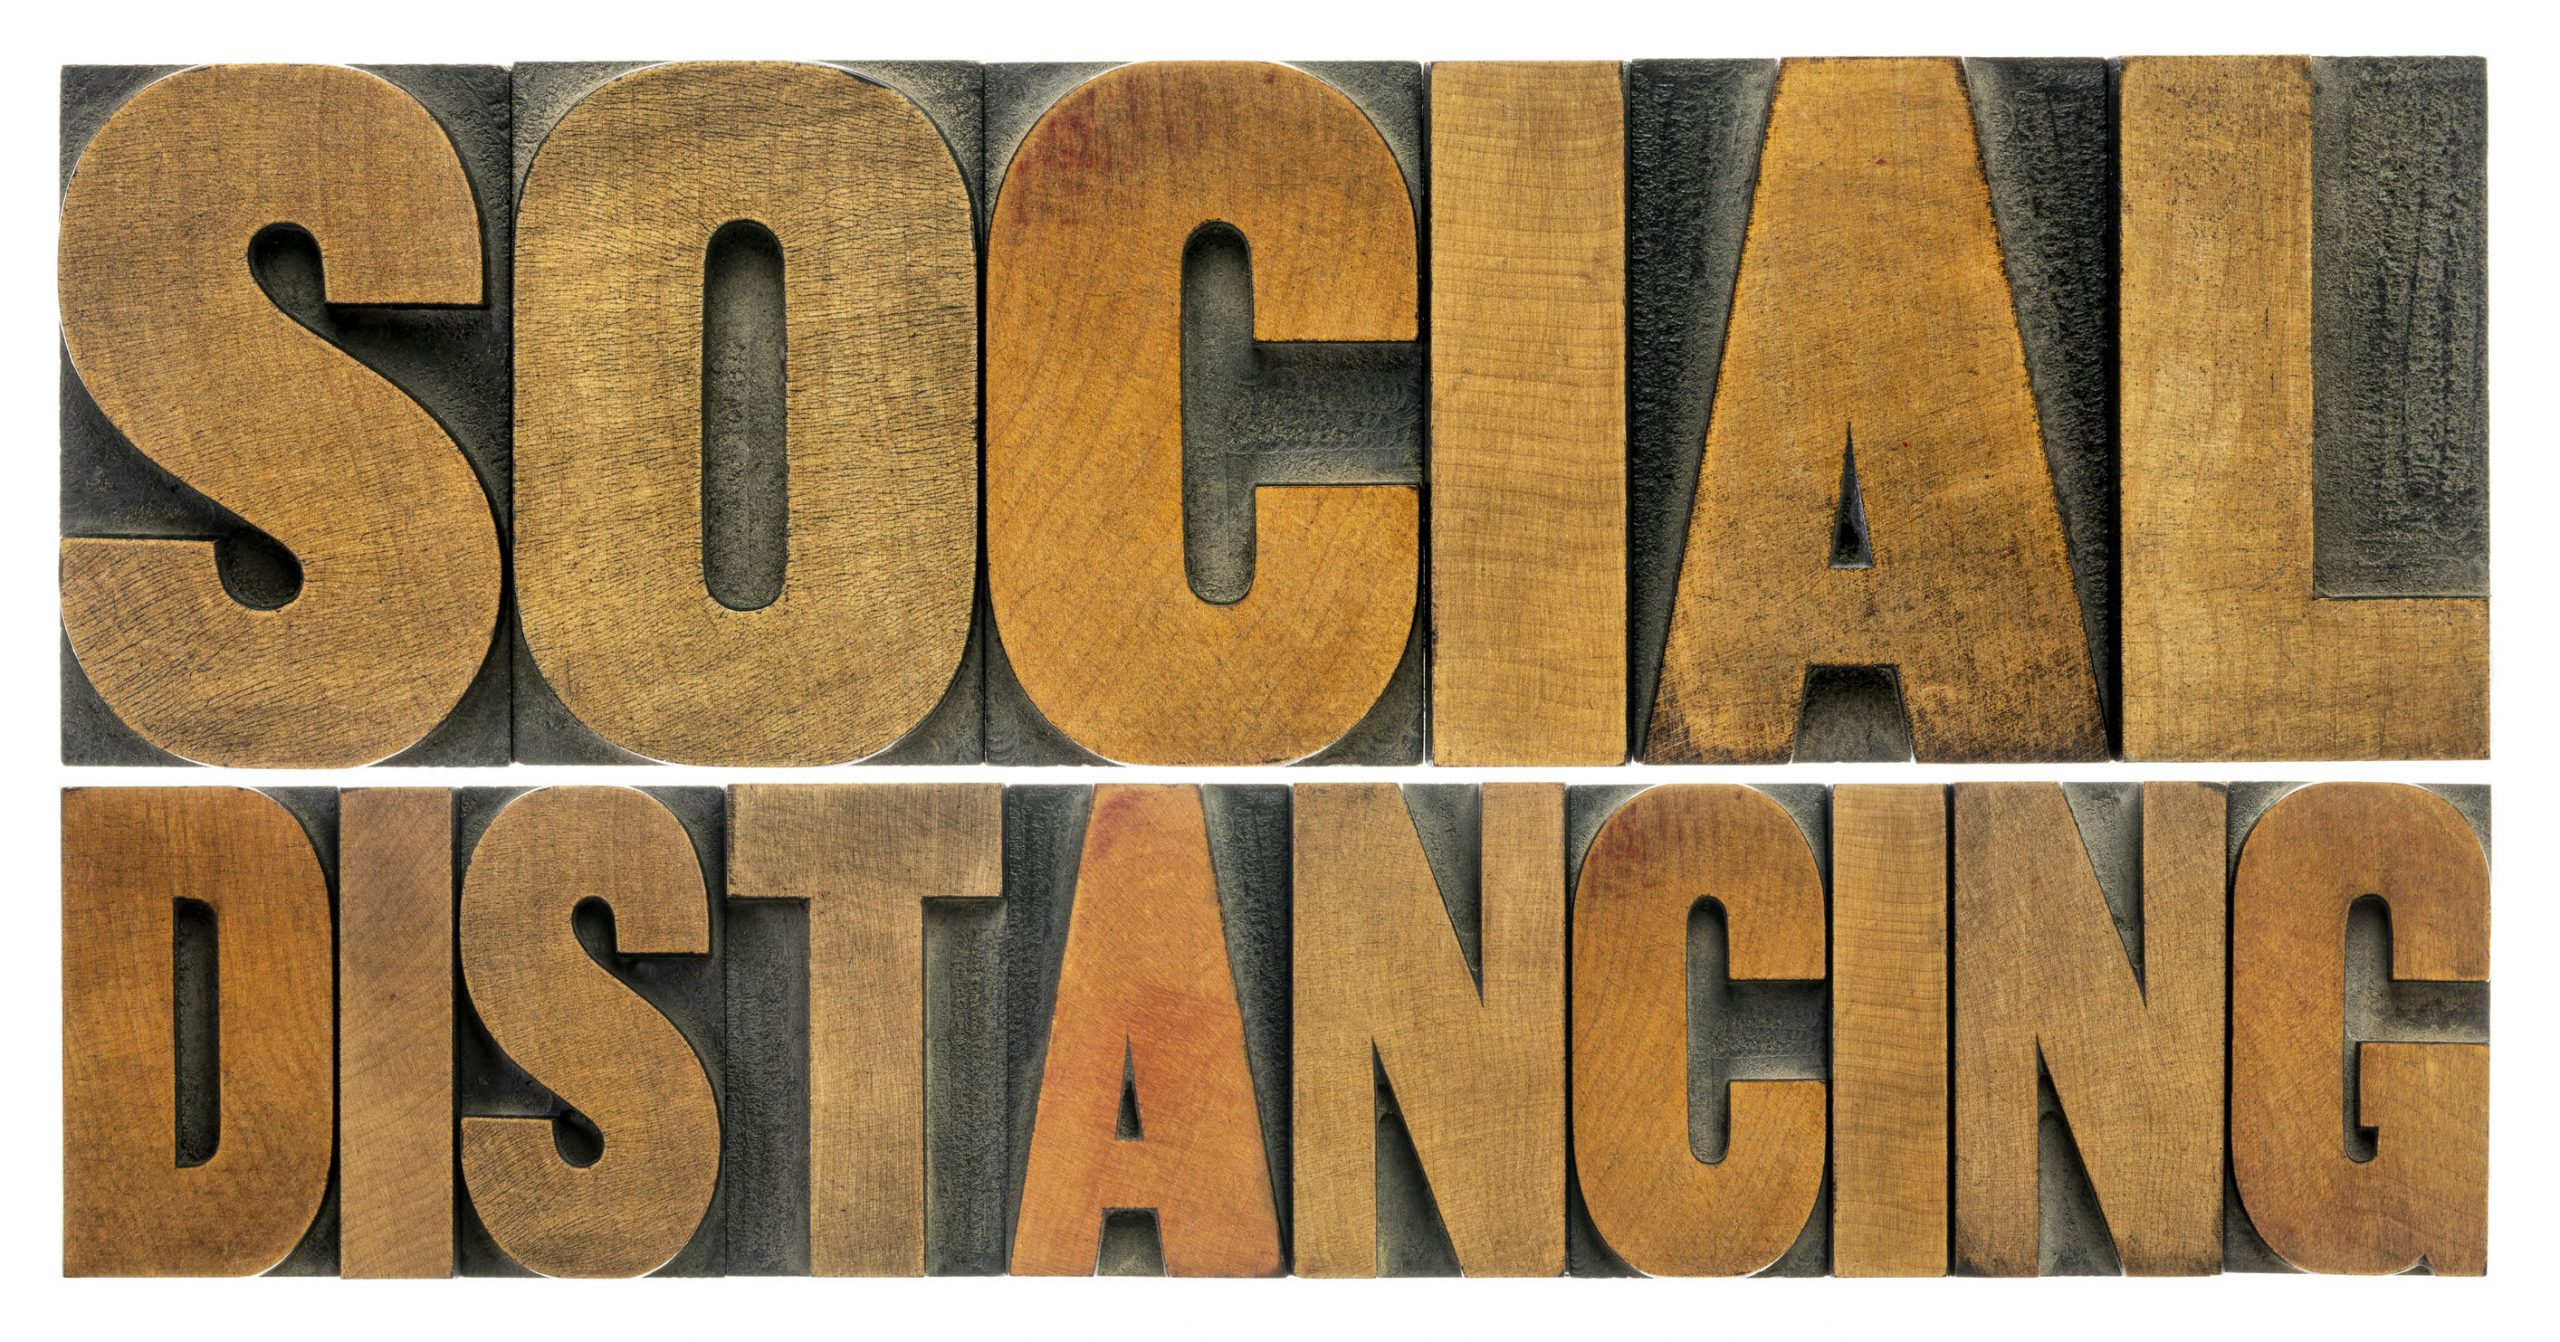 social distancing word abstract in wood type